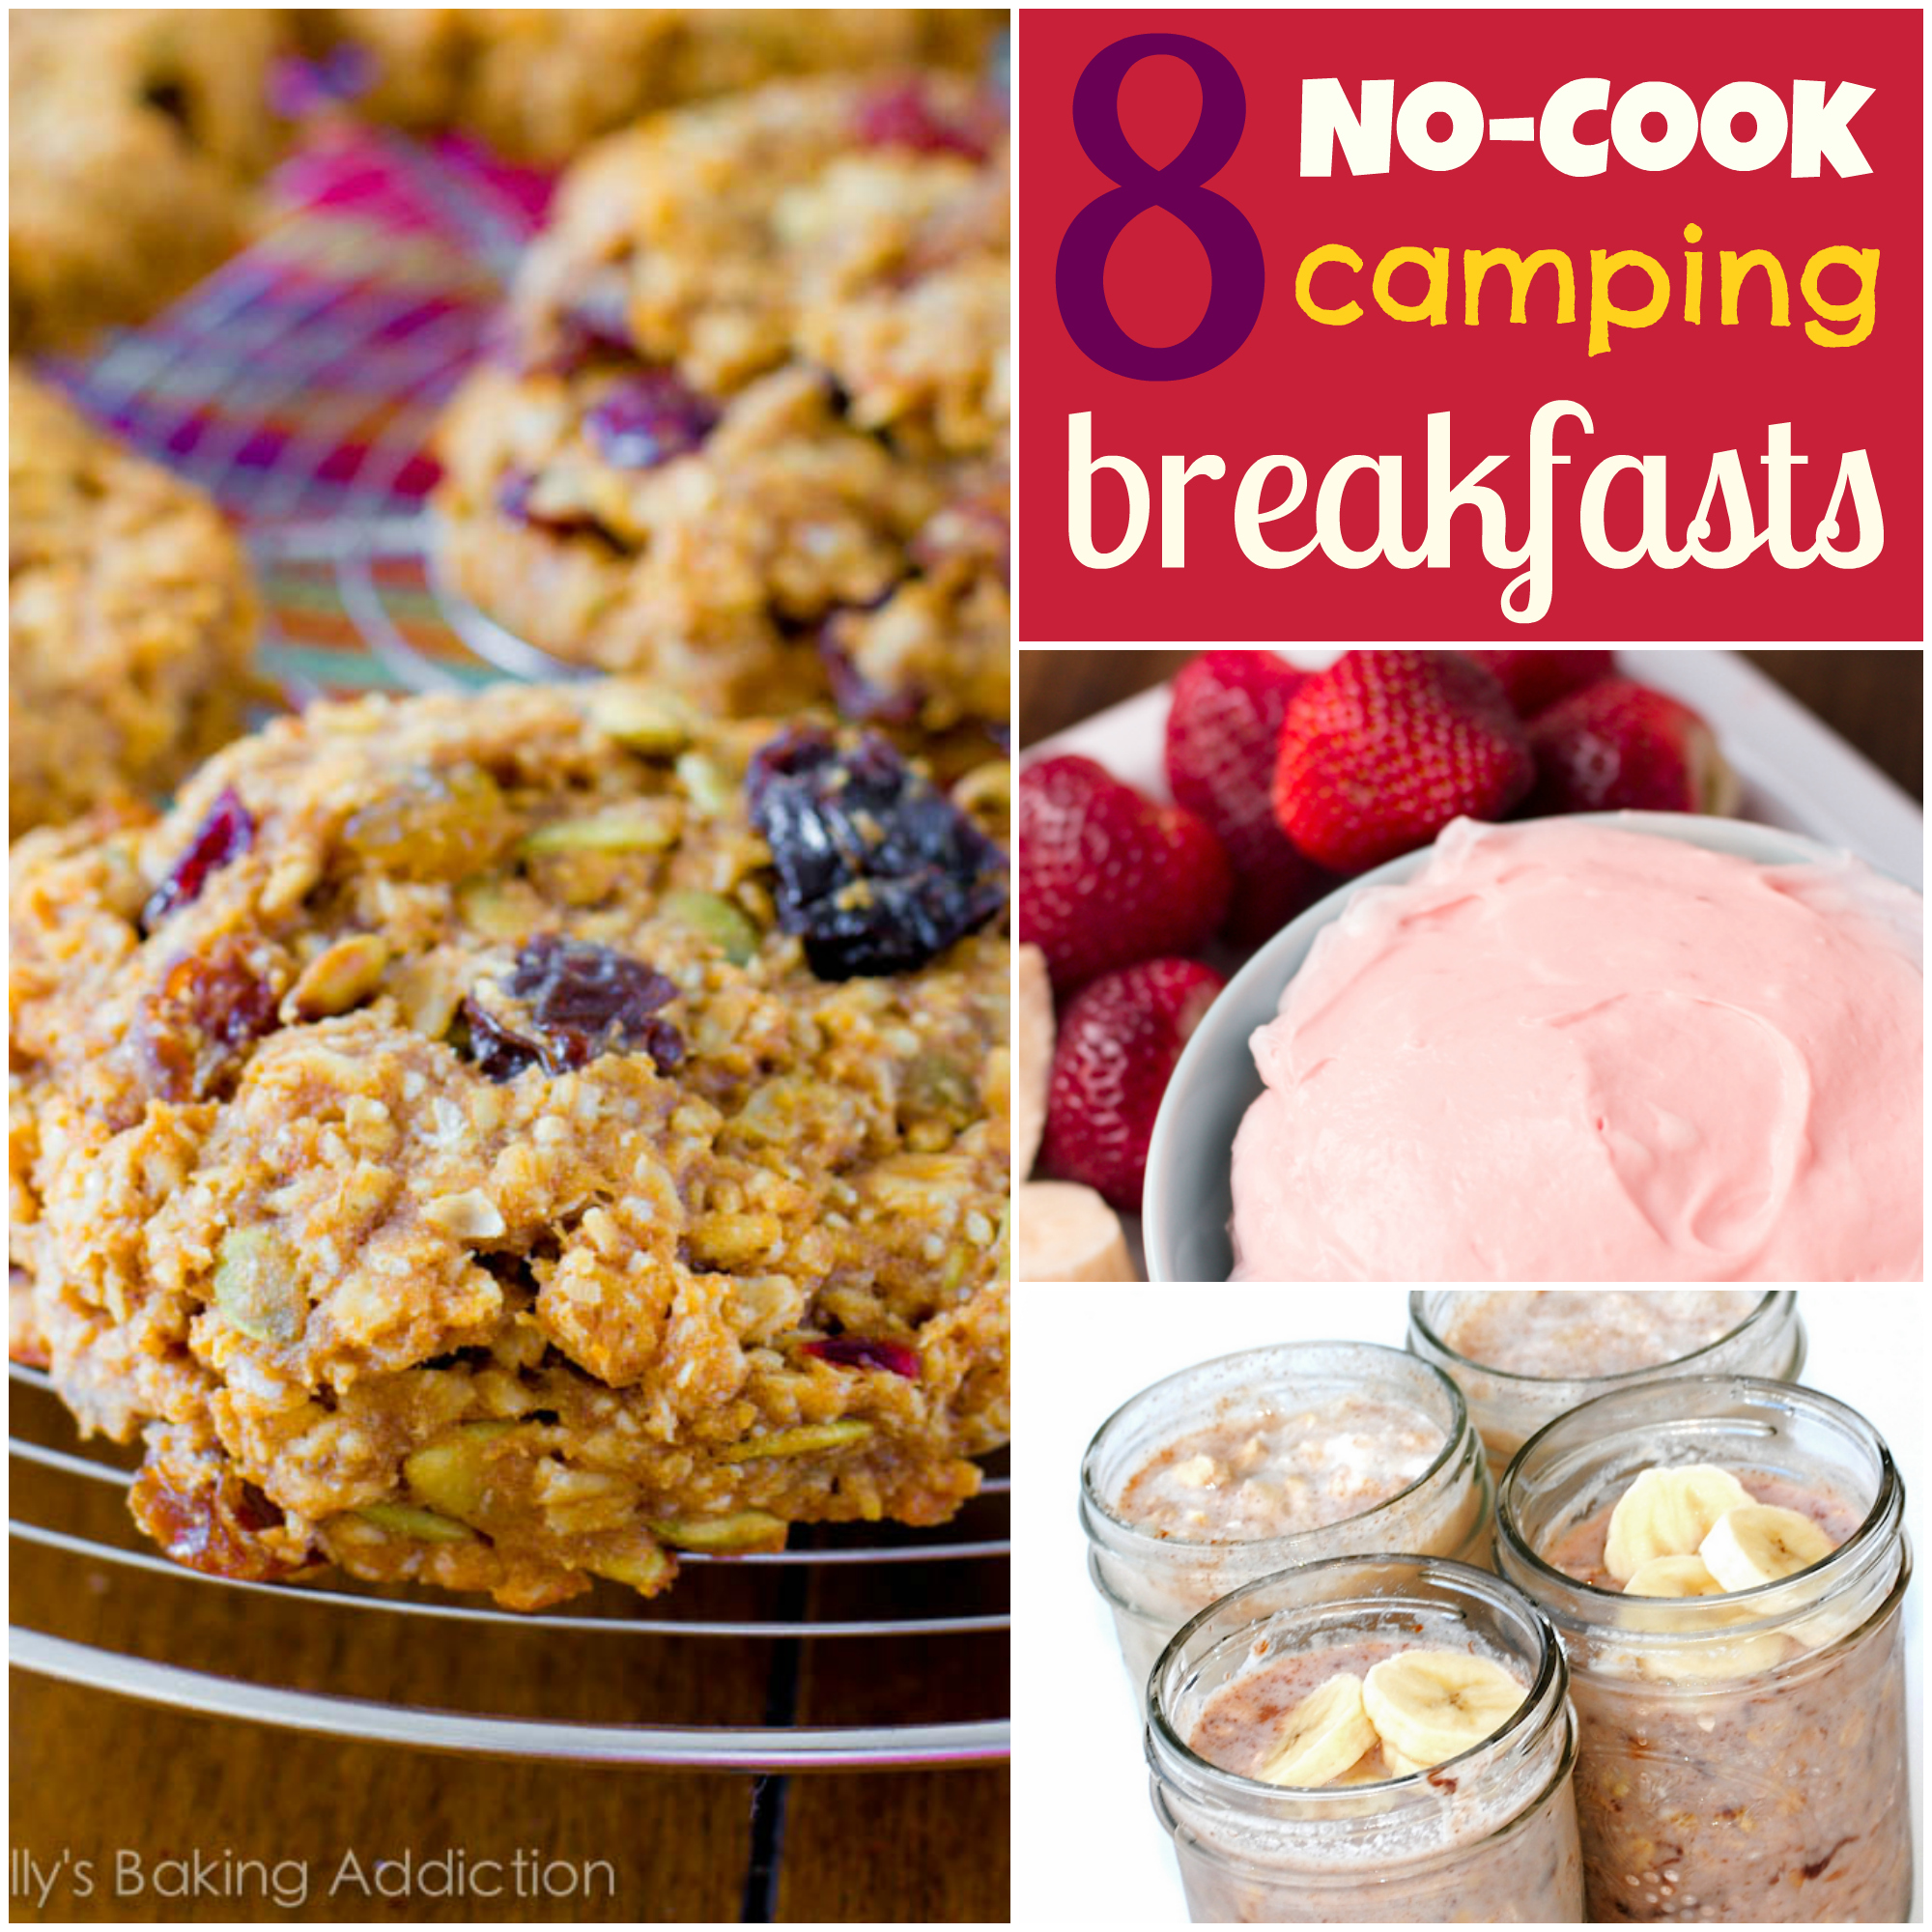 remodelaholic | 8 ideas for no-cook camping breakfasts